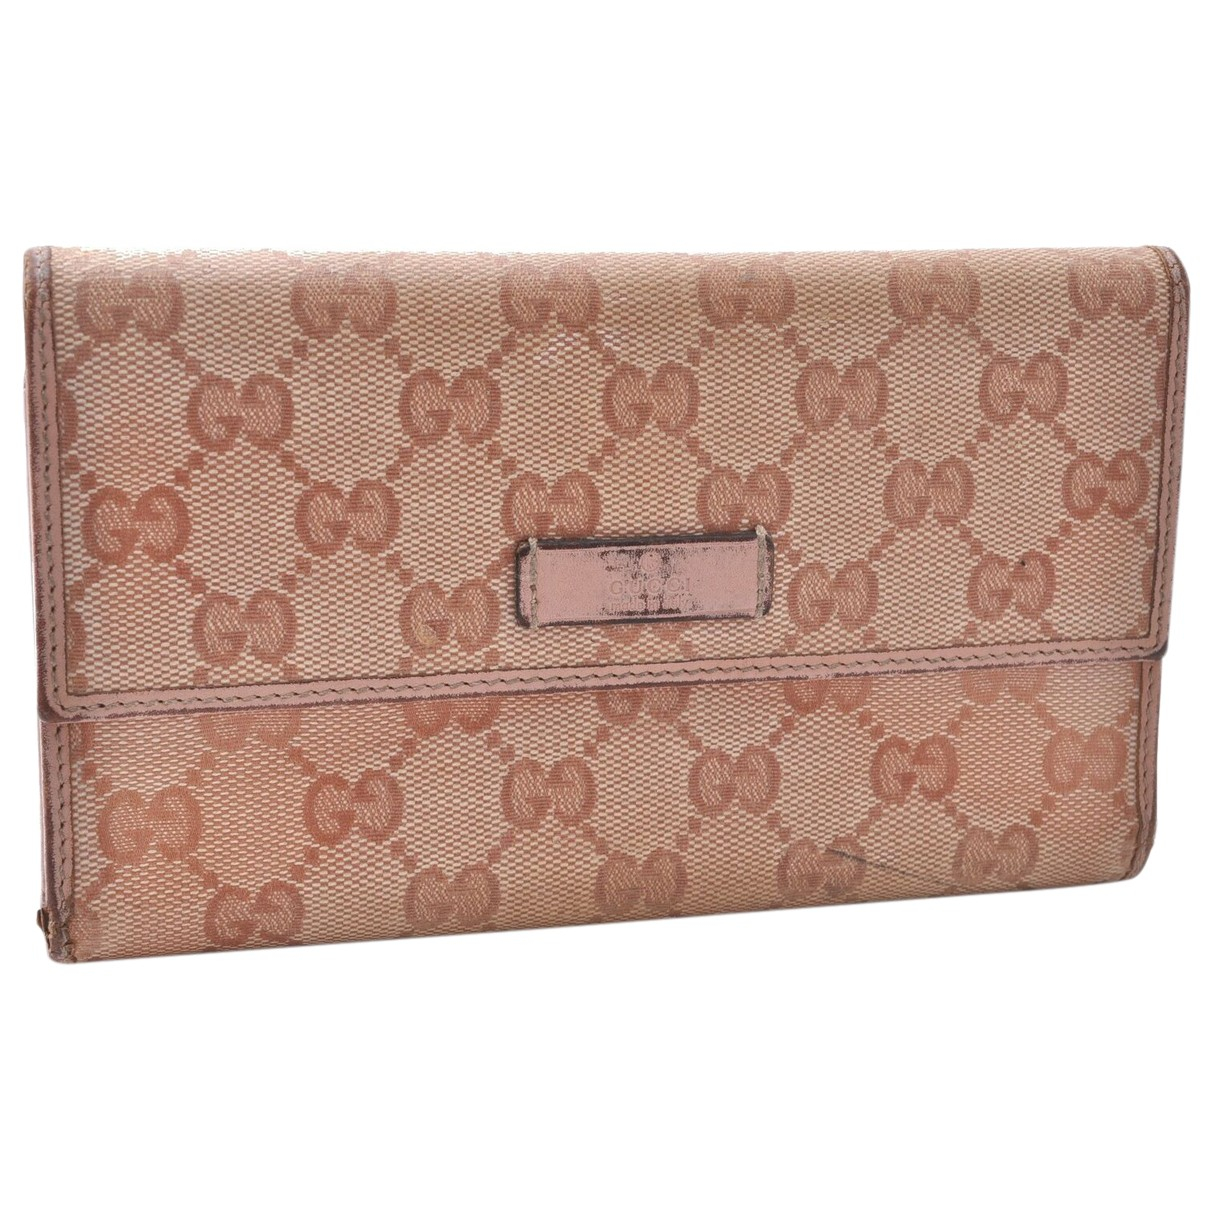 Gucci N Pink Cloth wallet for Women N